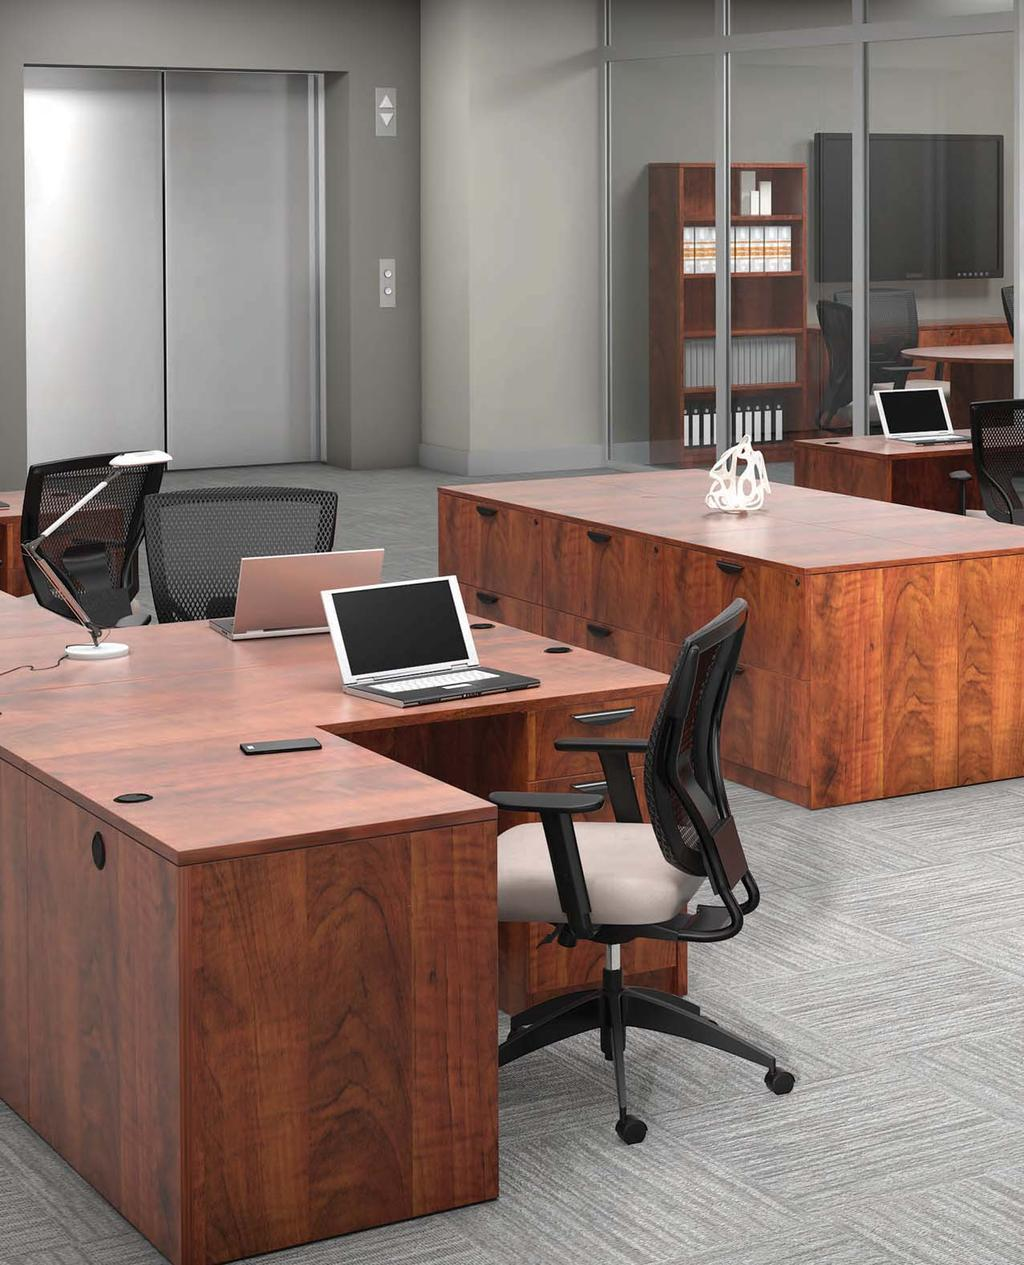 Affordable office furniture desks 888-442-8242 8242 GREENGUARD INDOOR AIR QUALITY CERTIFICATION All Offices To Go Superior Laminate Desking is in compliance with stringent emission guidelines set out